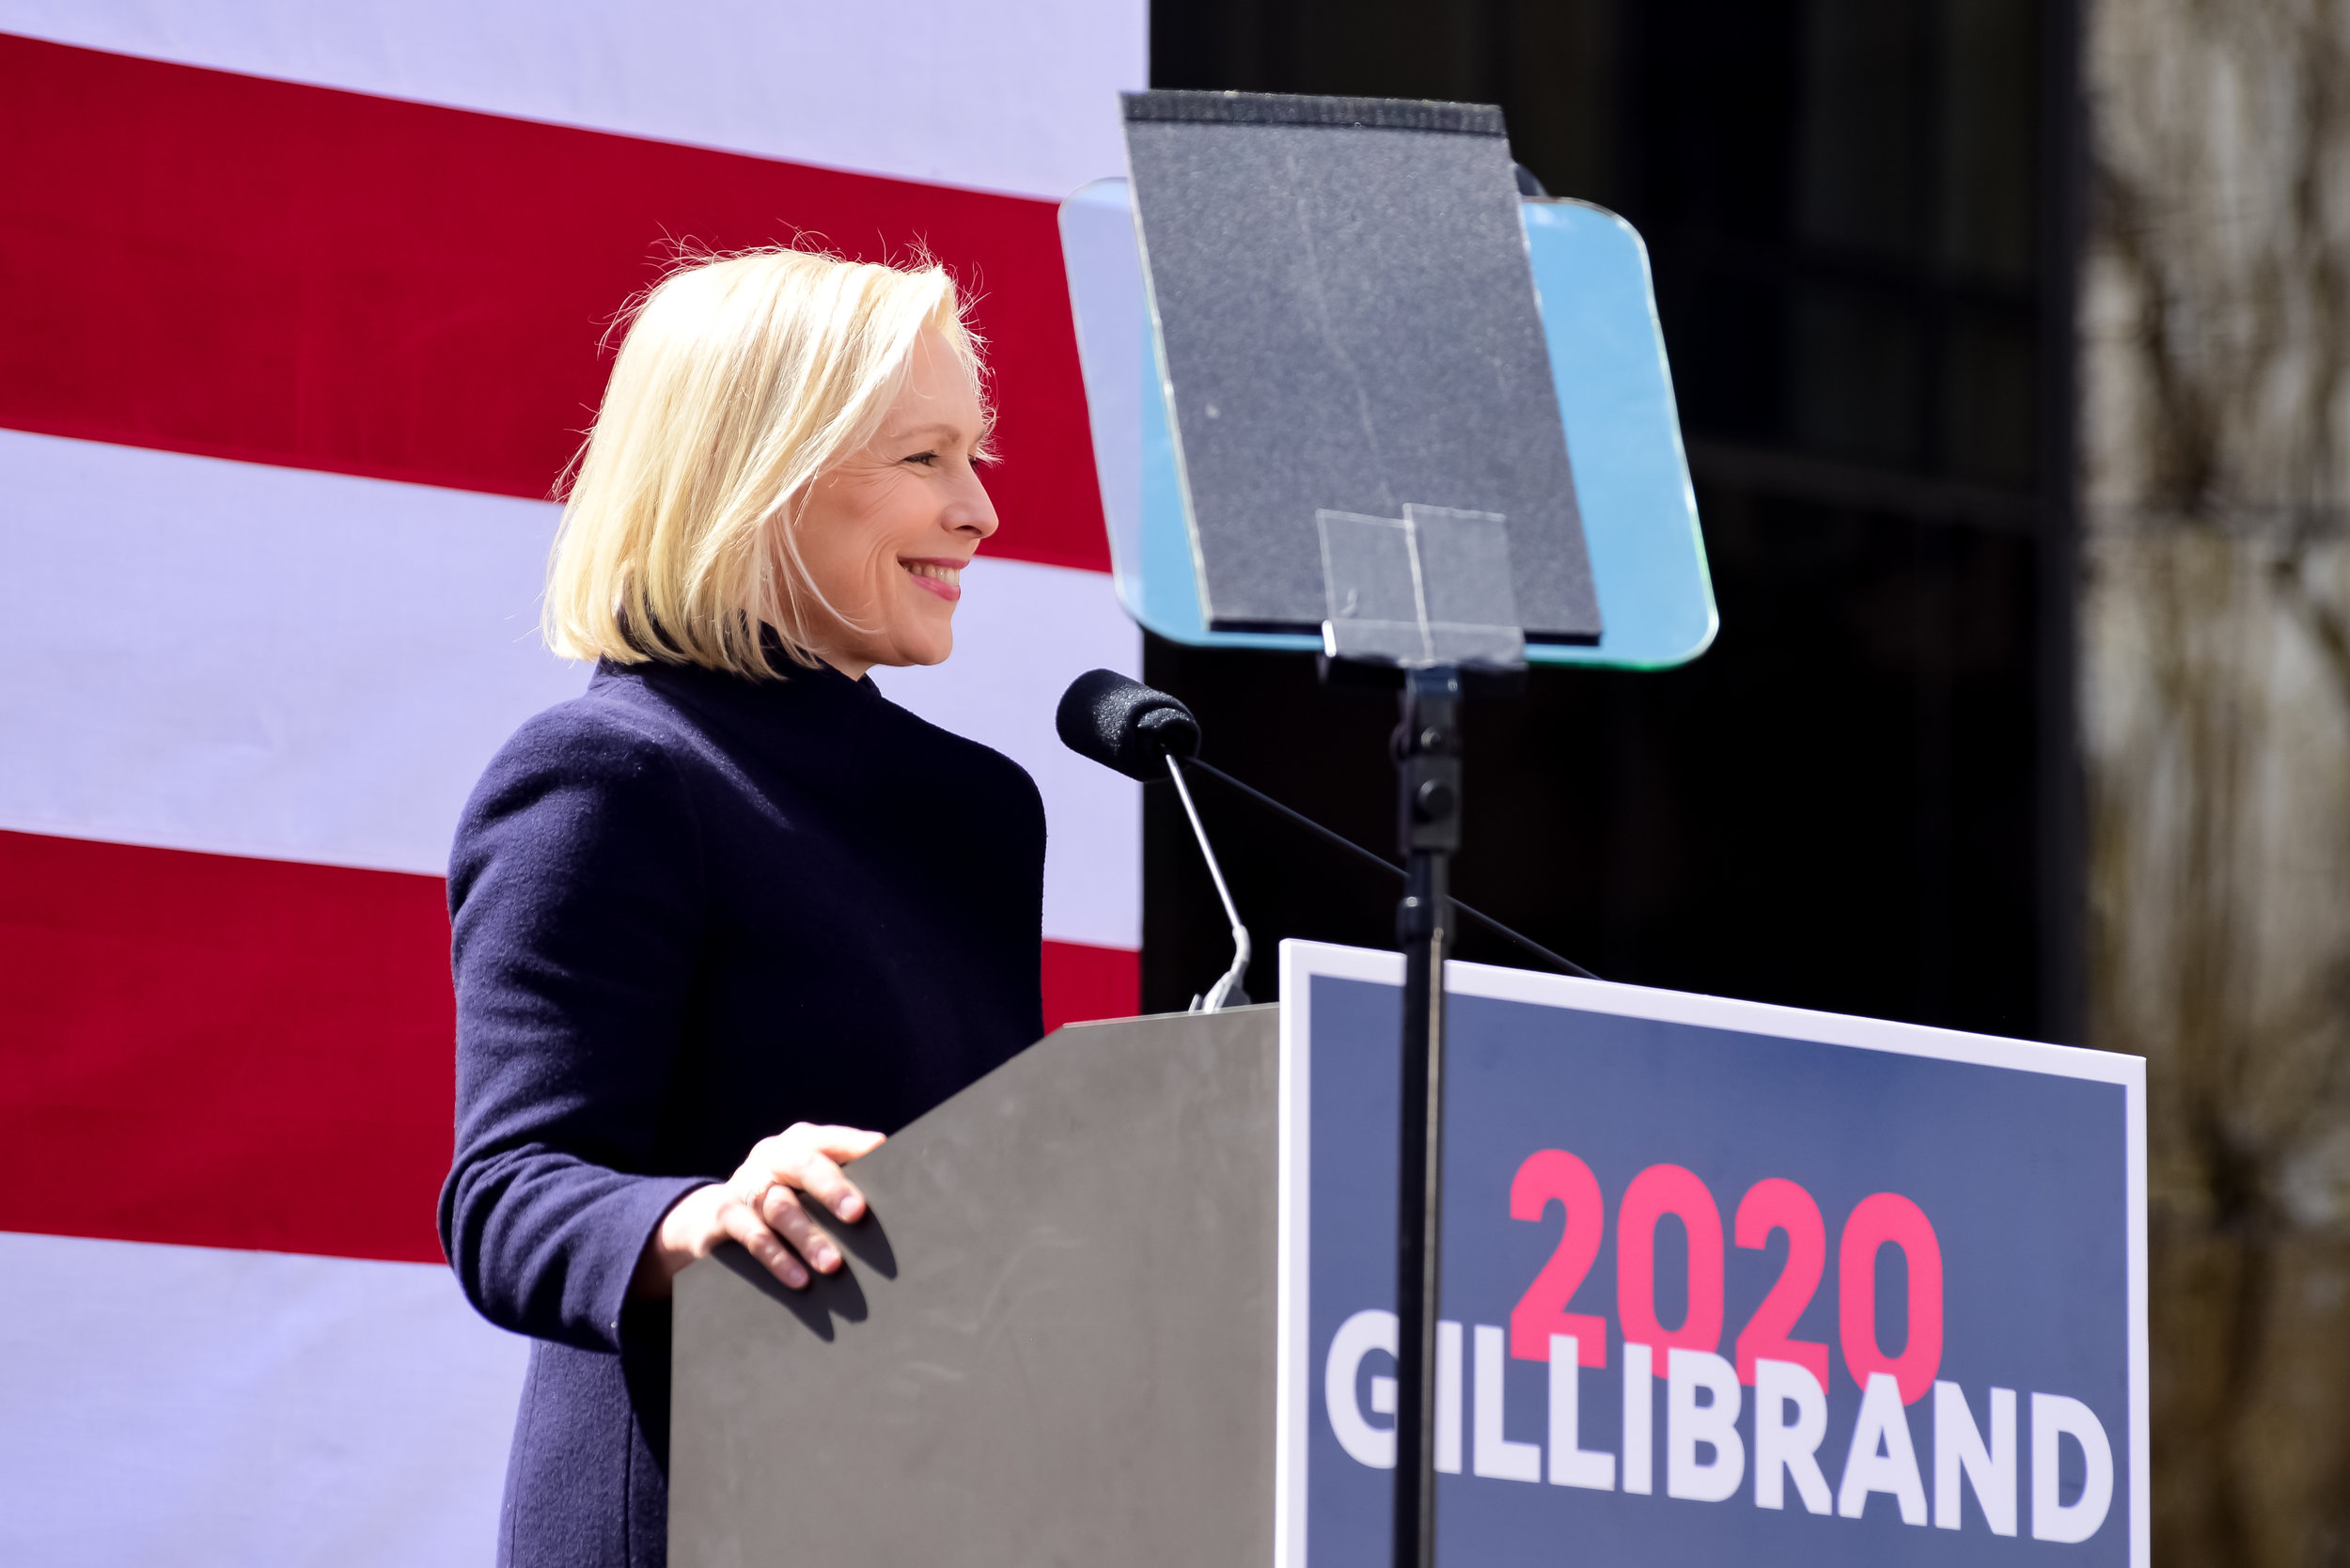 GILLIBRAND 2020 RALLY, NEW YORK, 2019